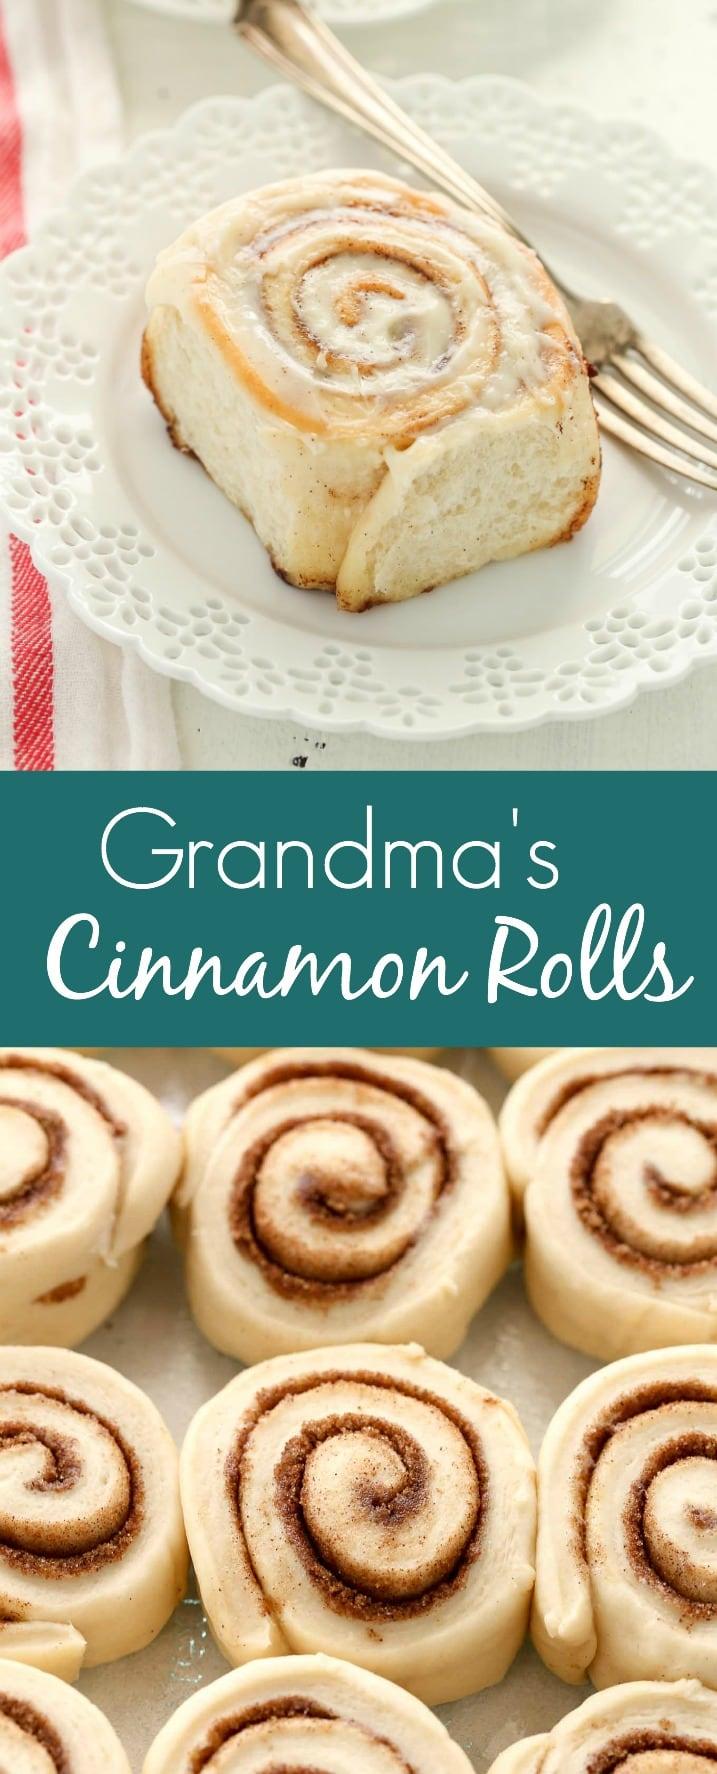 An easy recipe and tutorial on how to make my family's favorite cinnamon rolls. You can serve these cinnamon rolls with a cream cheese frosting or simple vanilla icing and even prep them ahead of time!